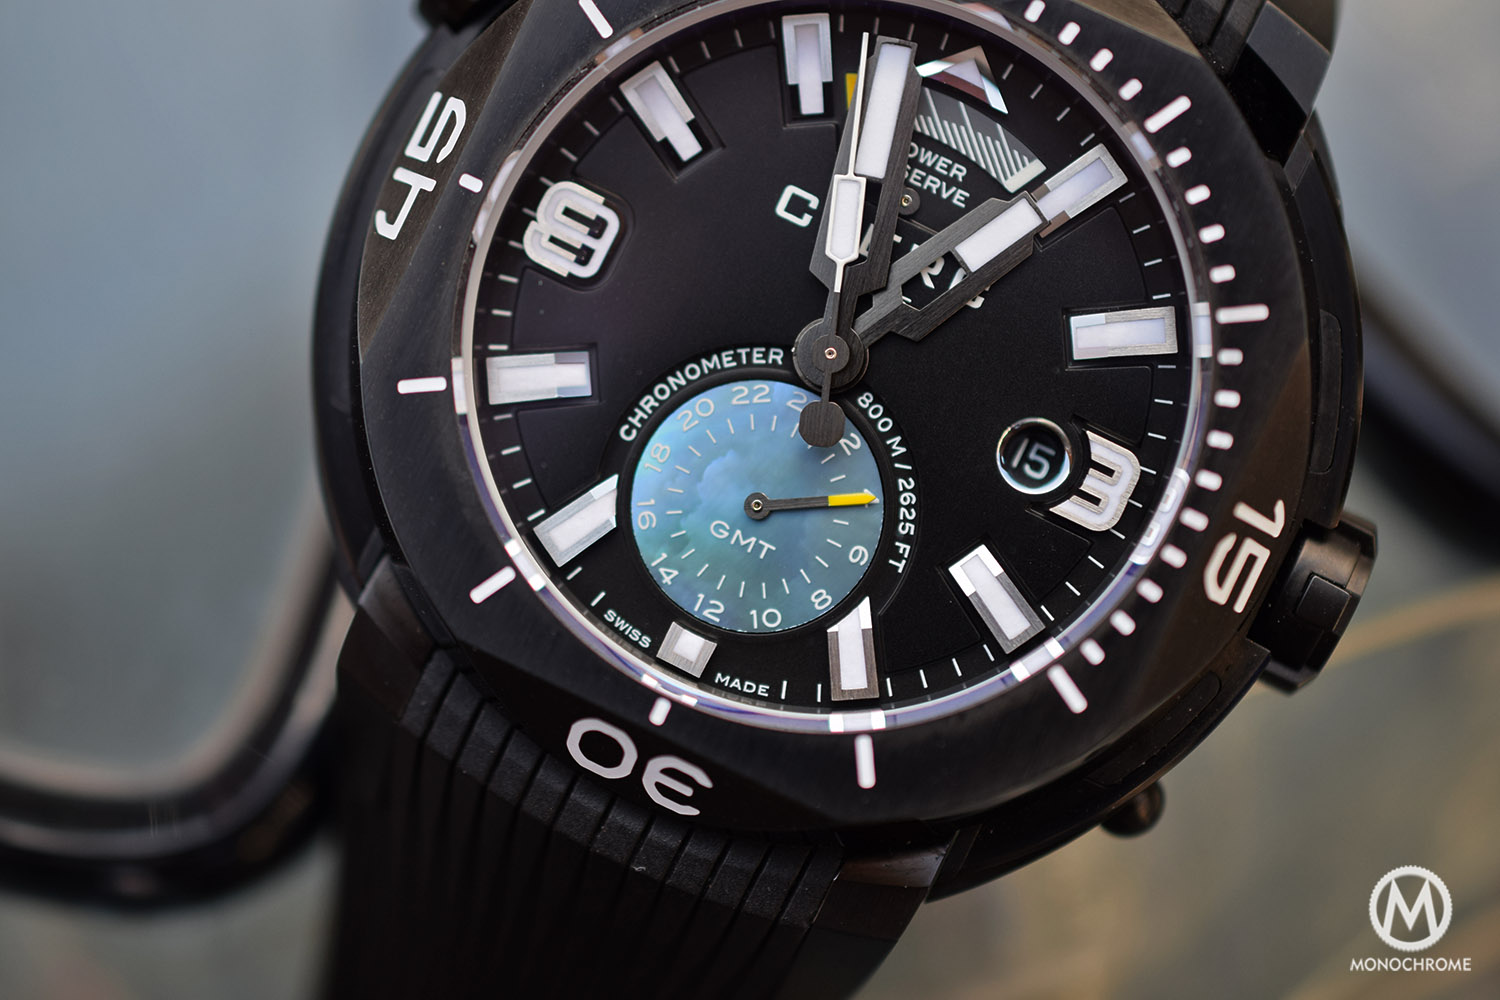 watch dial display